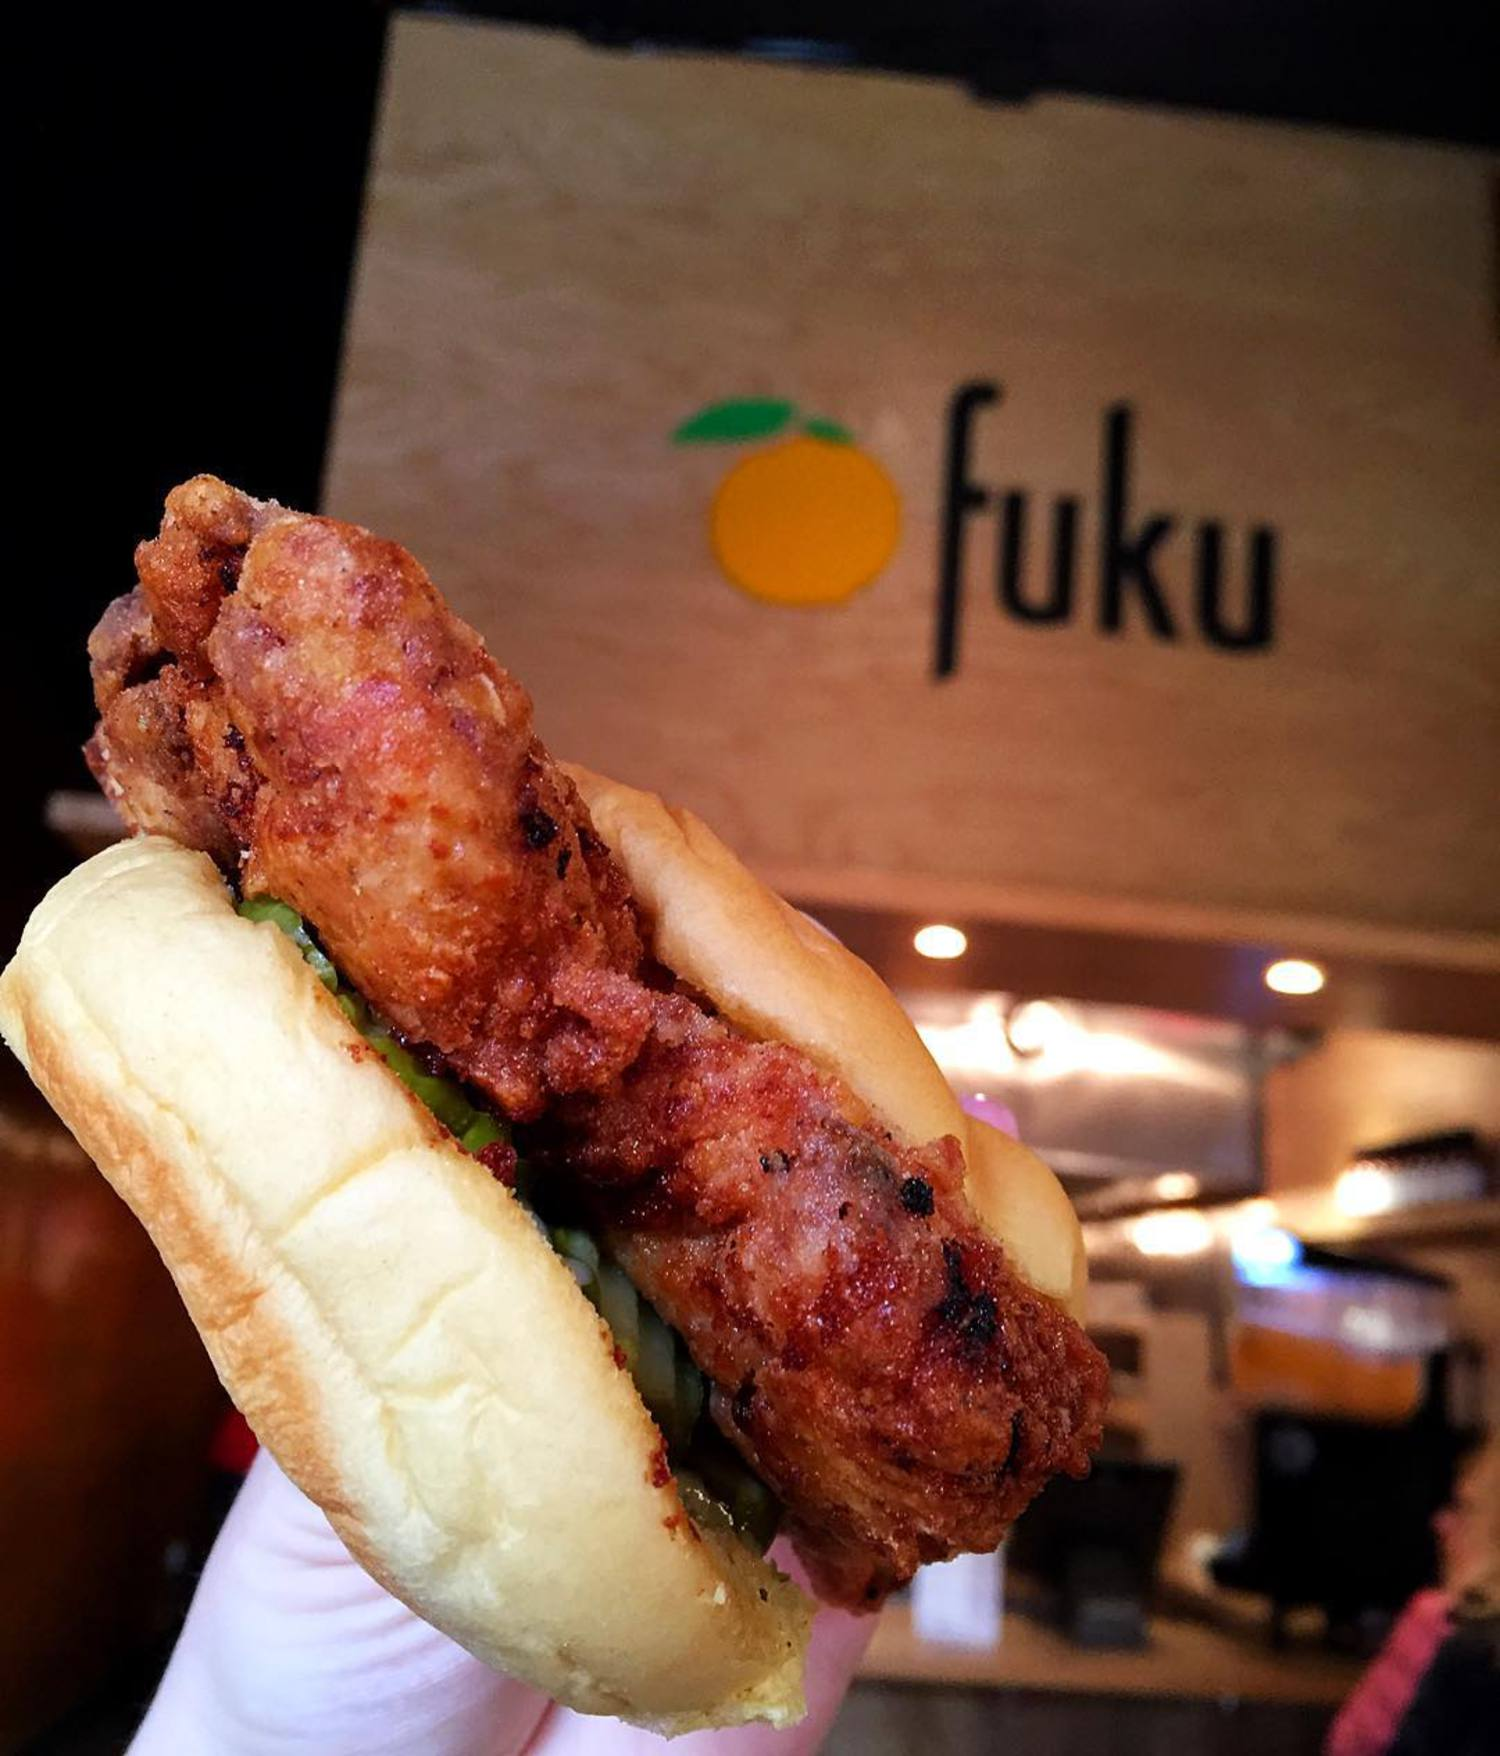 The best spicy fried chicken sandwich in NYC - coated with habanero and topped with pickles & Fuku's famous Ssäm sauce 😋